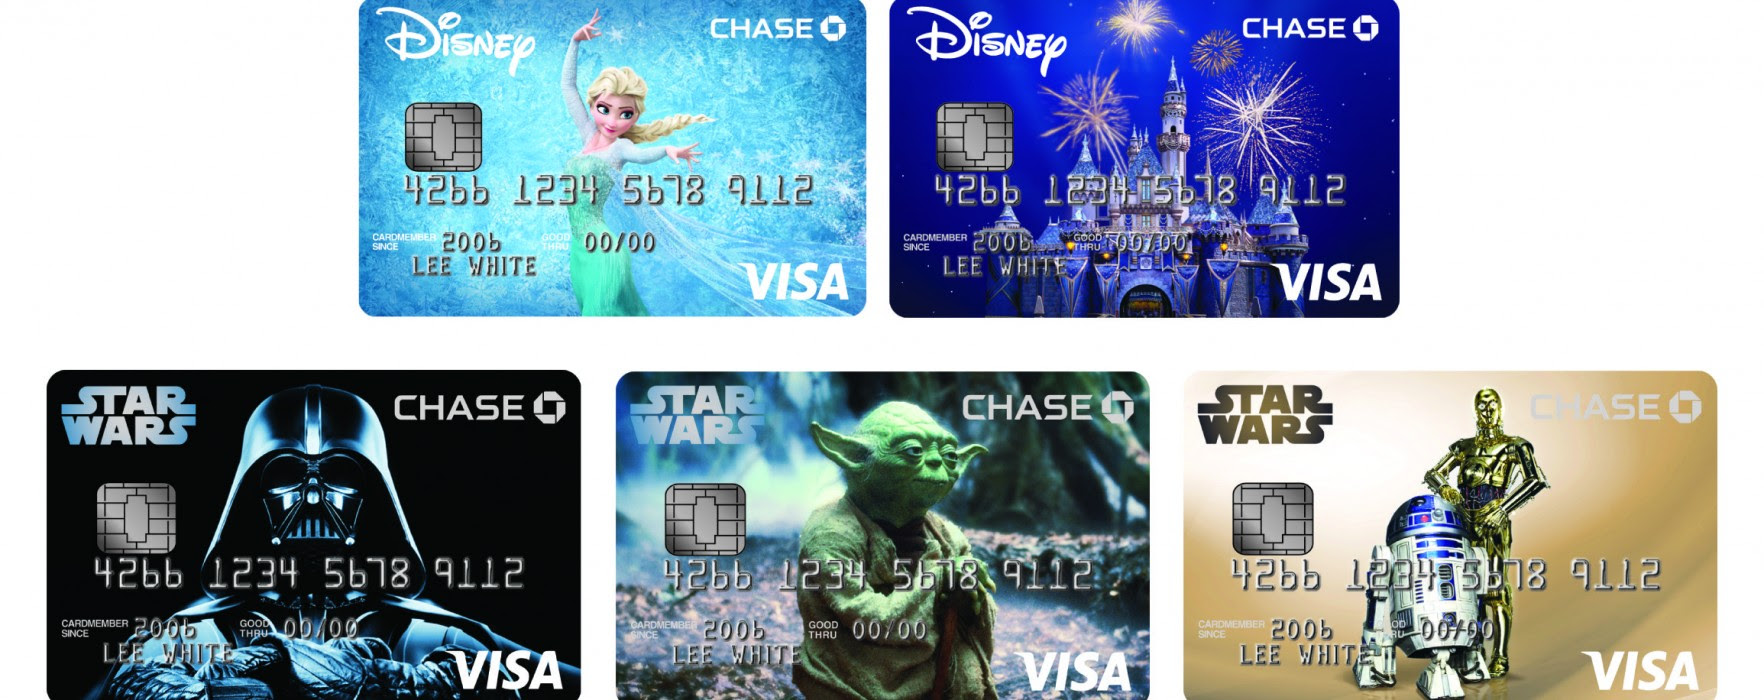 Chase to Offer New Star Wars Disney Visa Credit Card ...